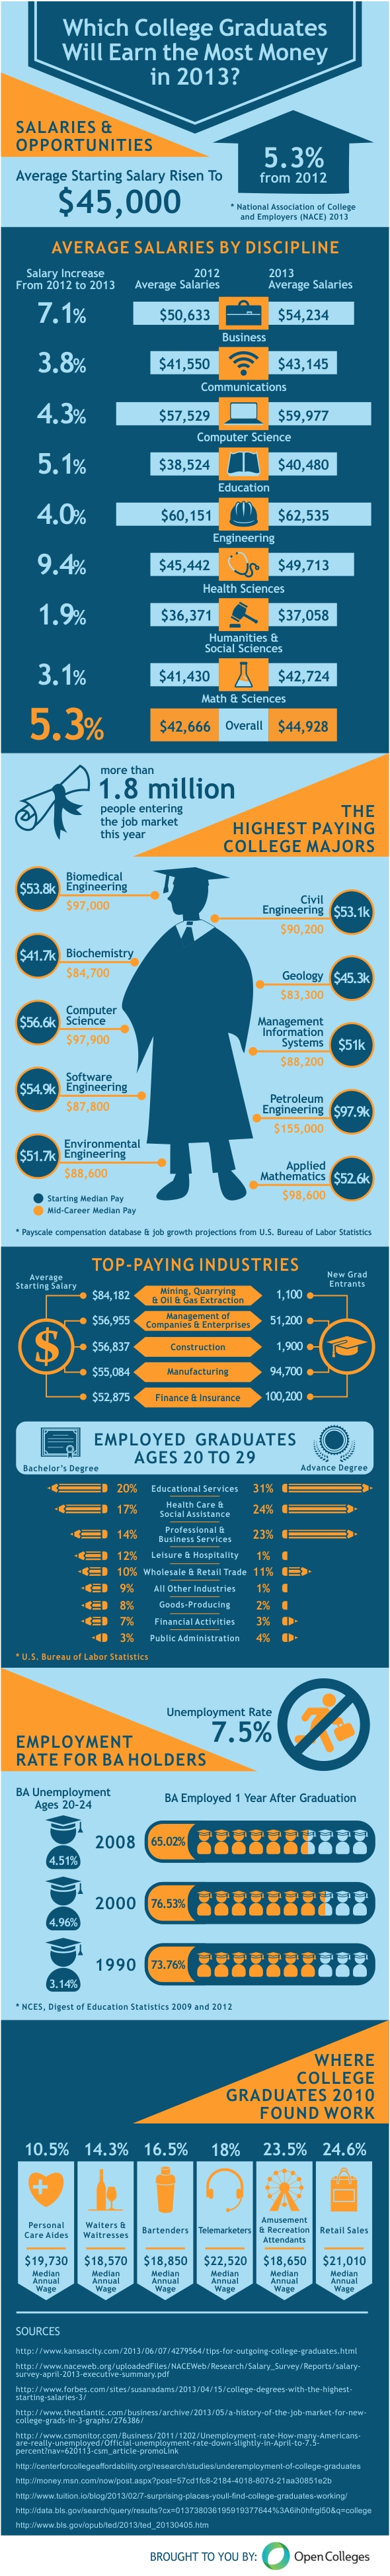 Which College Graduate Will Make The Most Money